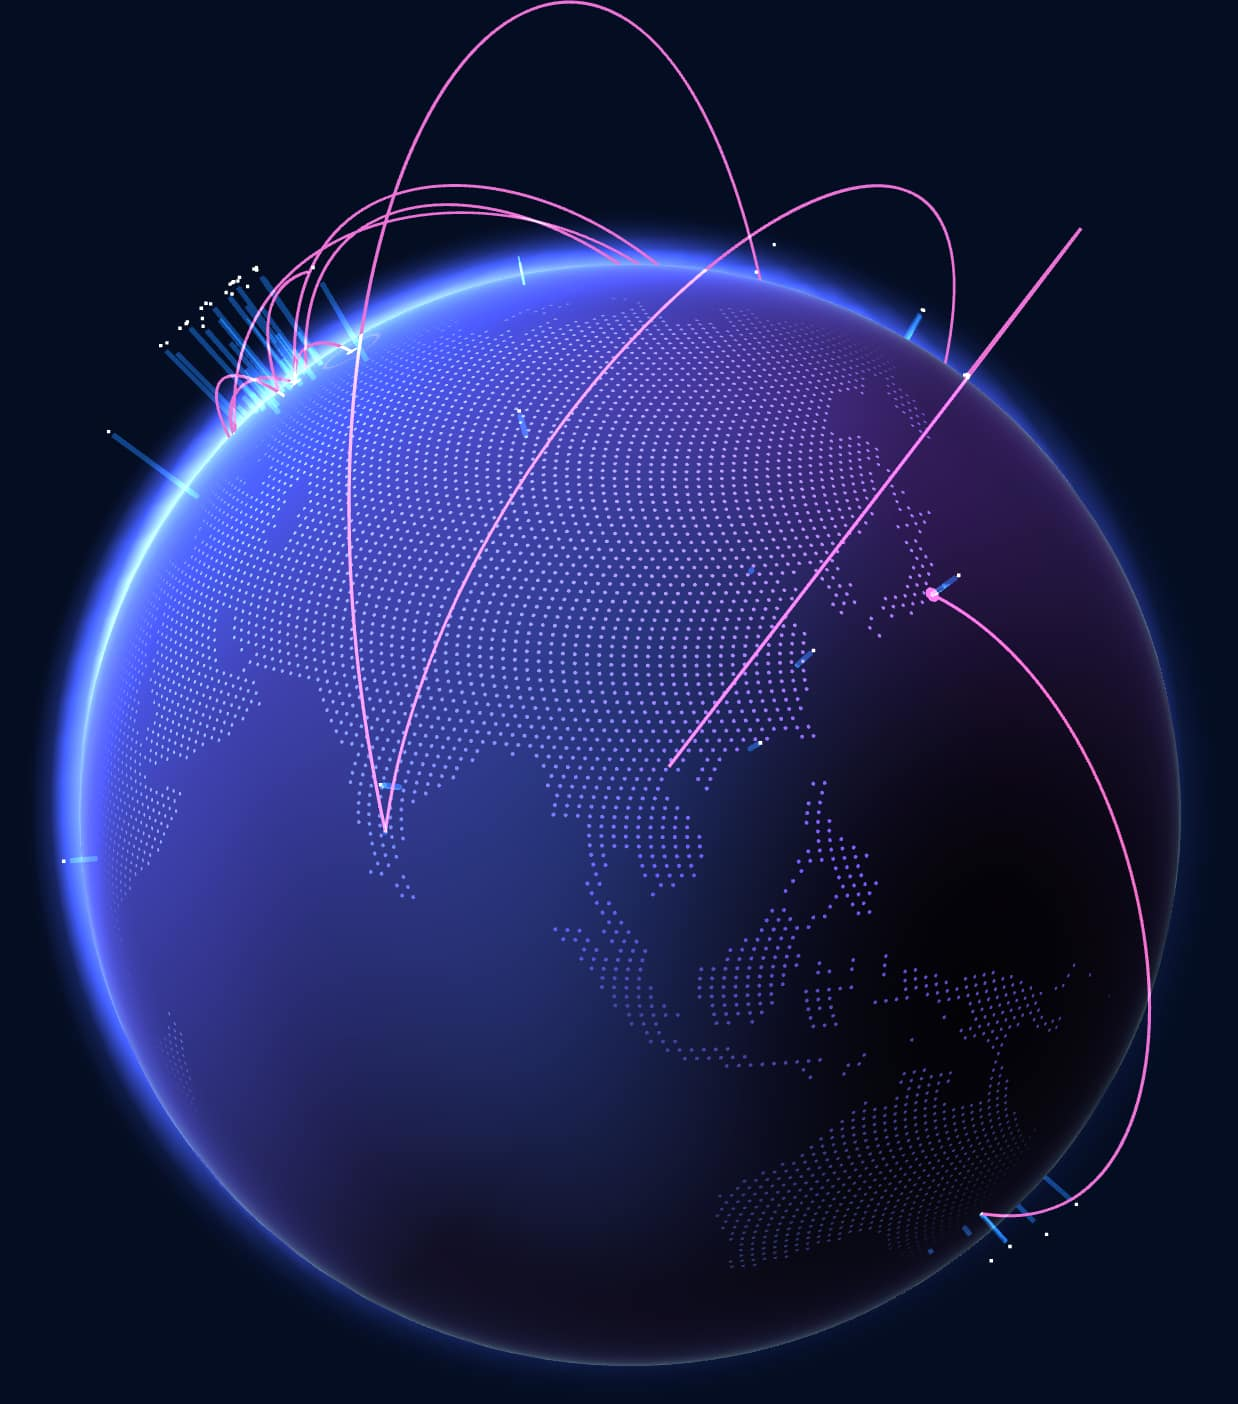 Planet earth with visualization of GitHub activity crossing the globe